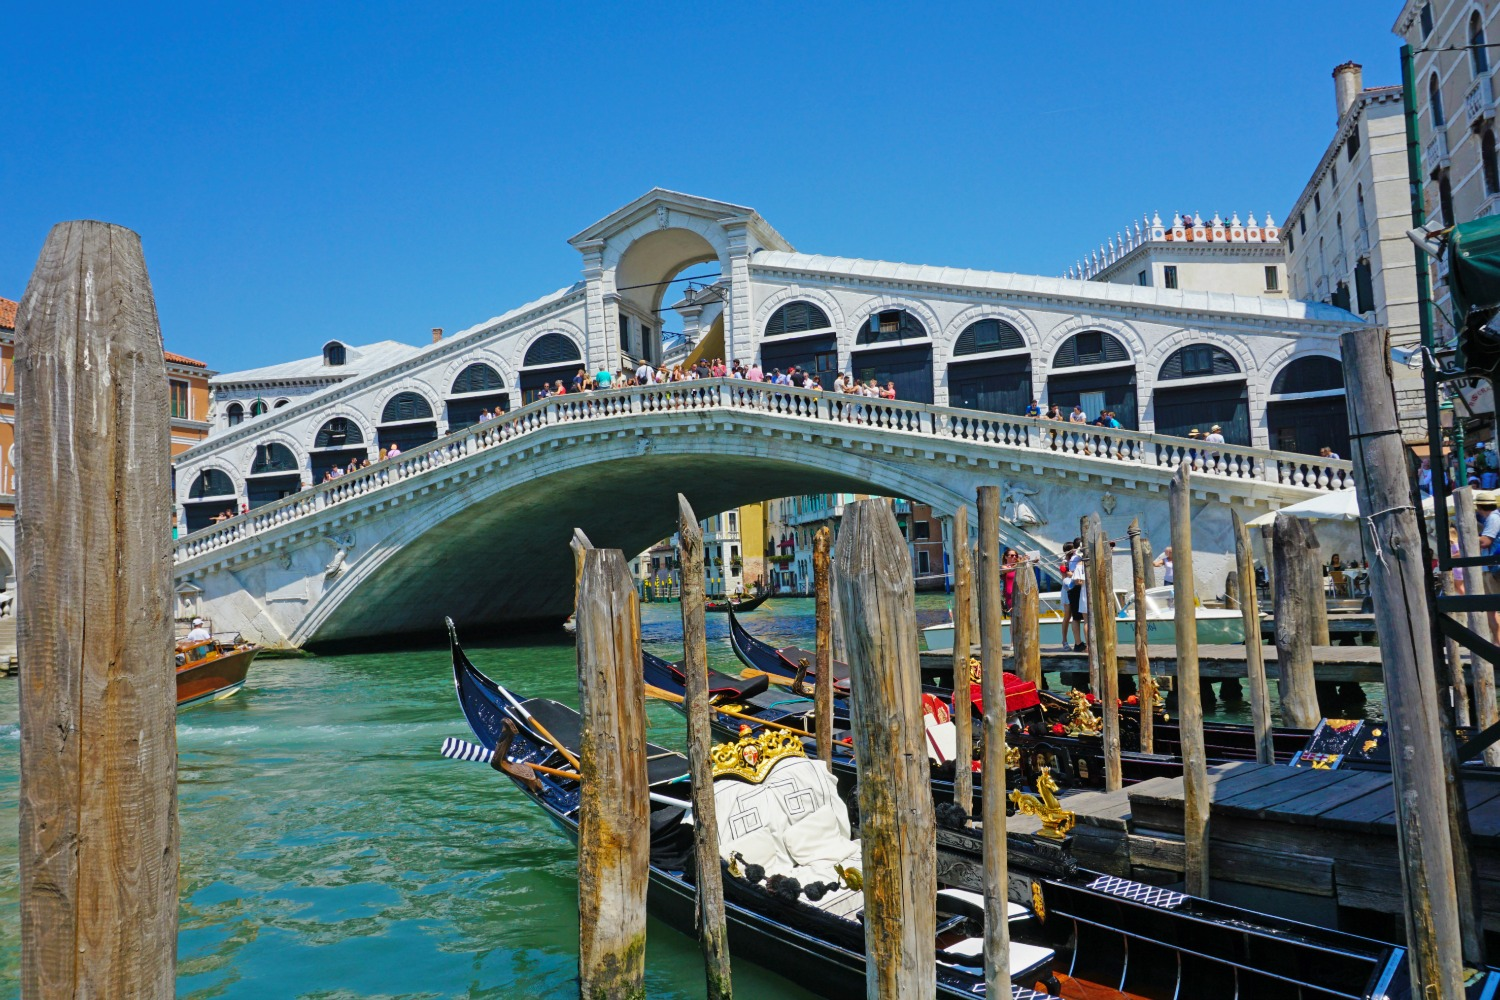 Rialto Bridge in Venice.